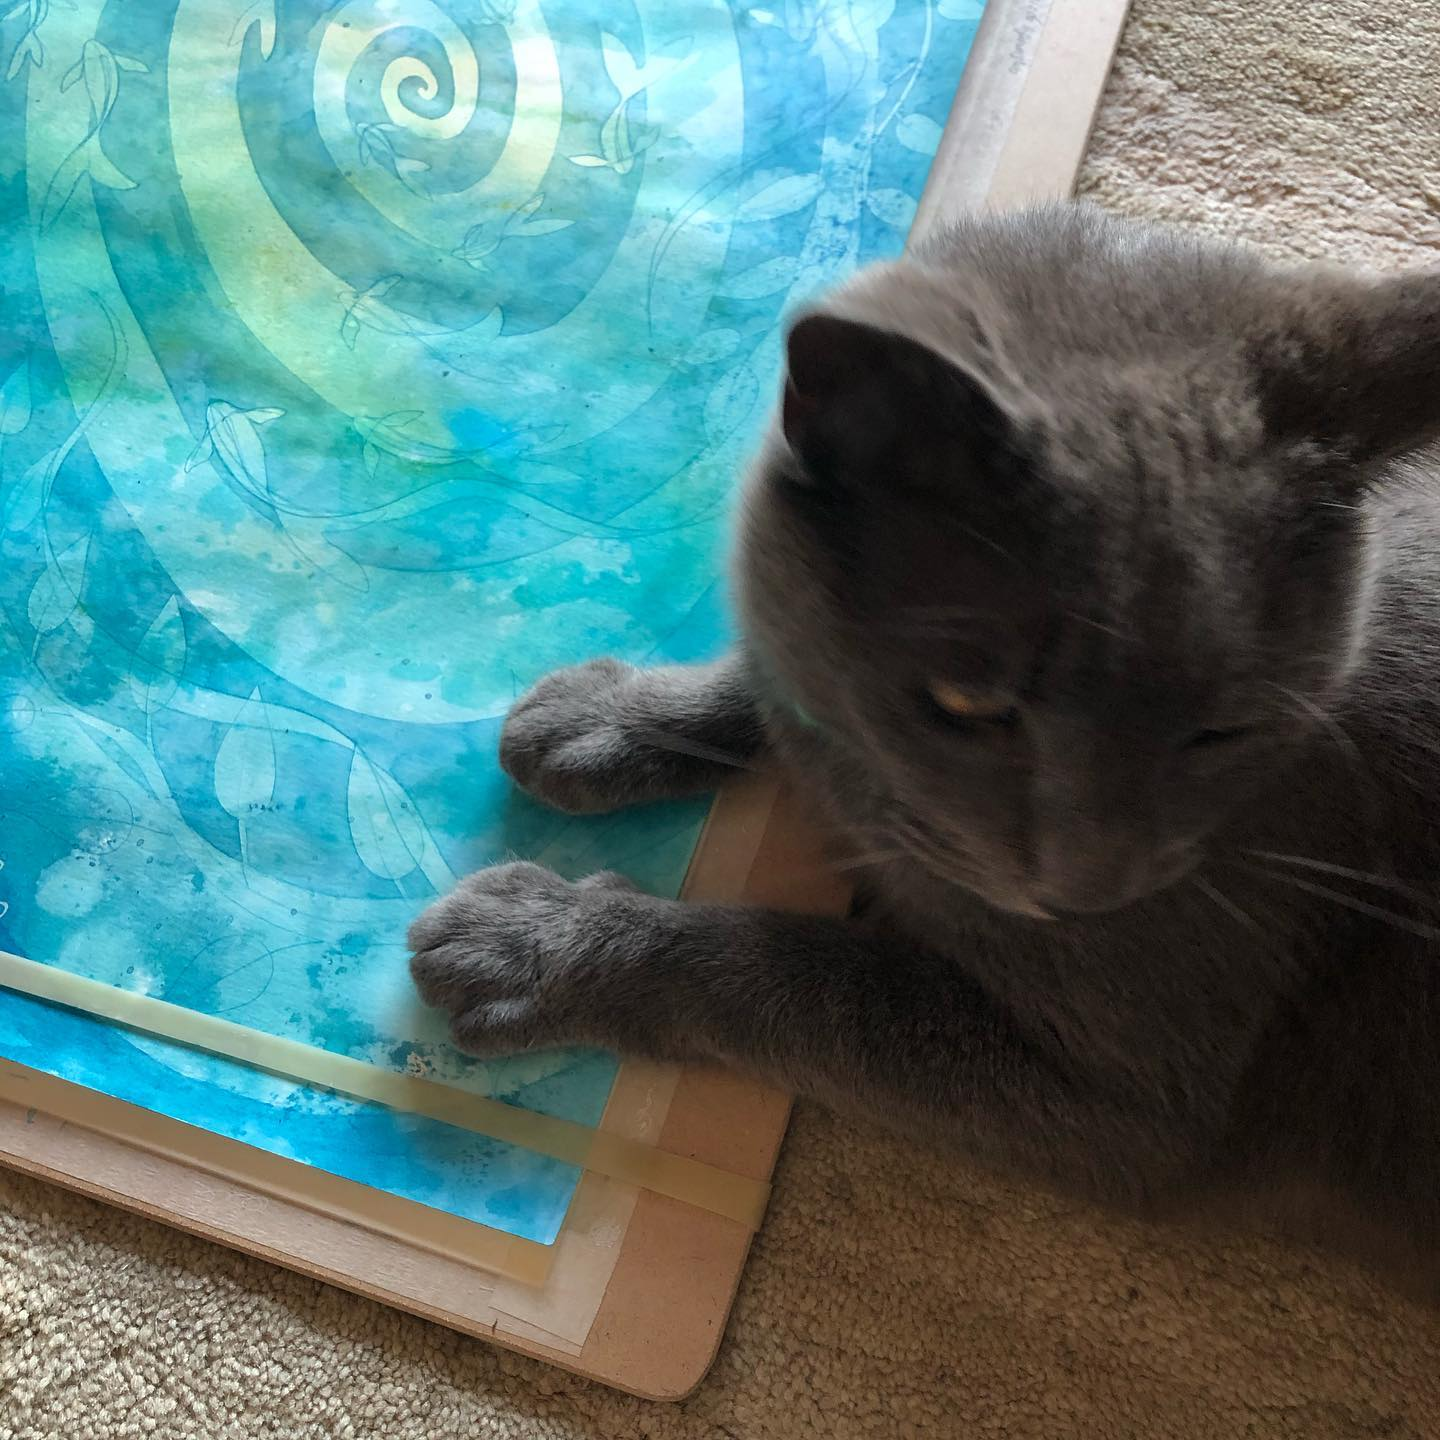 The artists cat seems to have taken a liking to the latest painting.   @lisa_cat